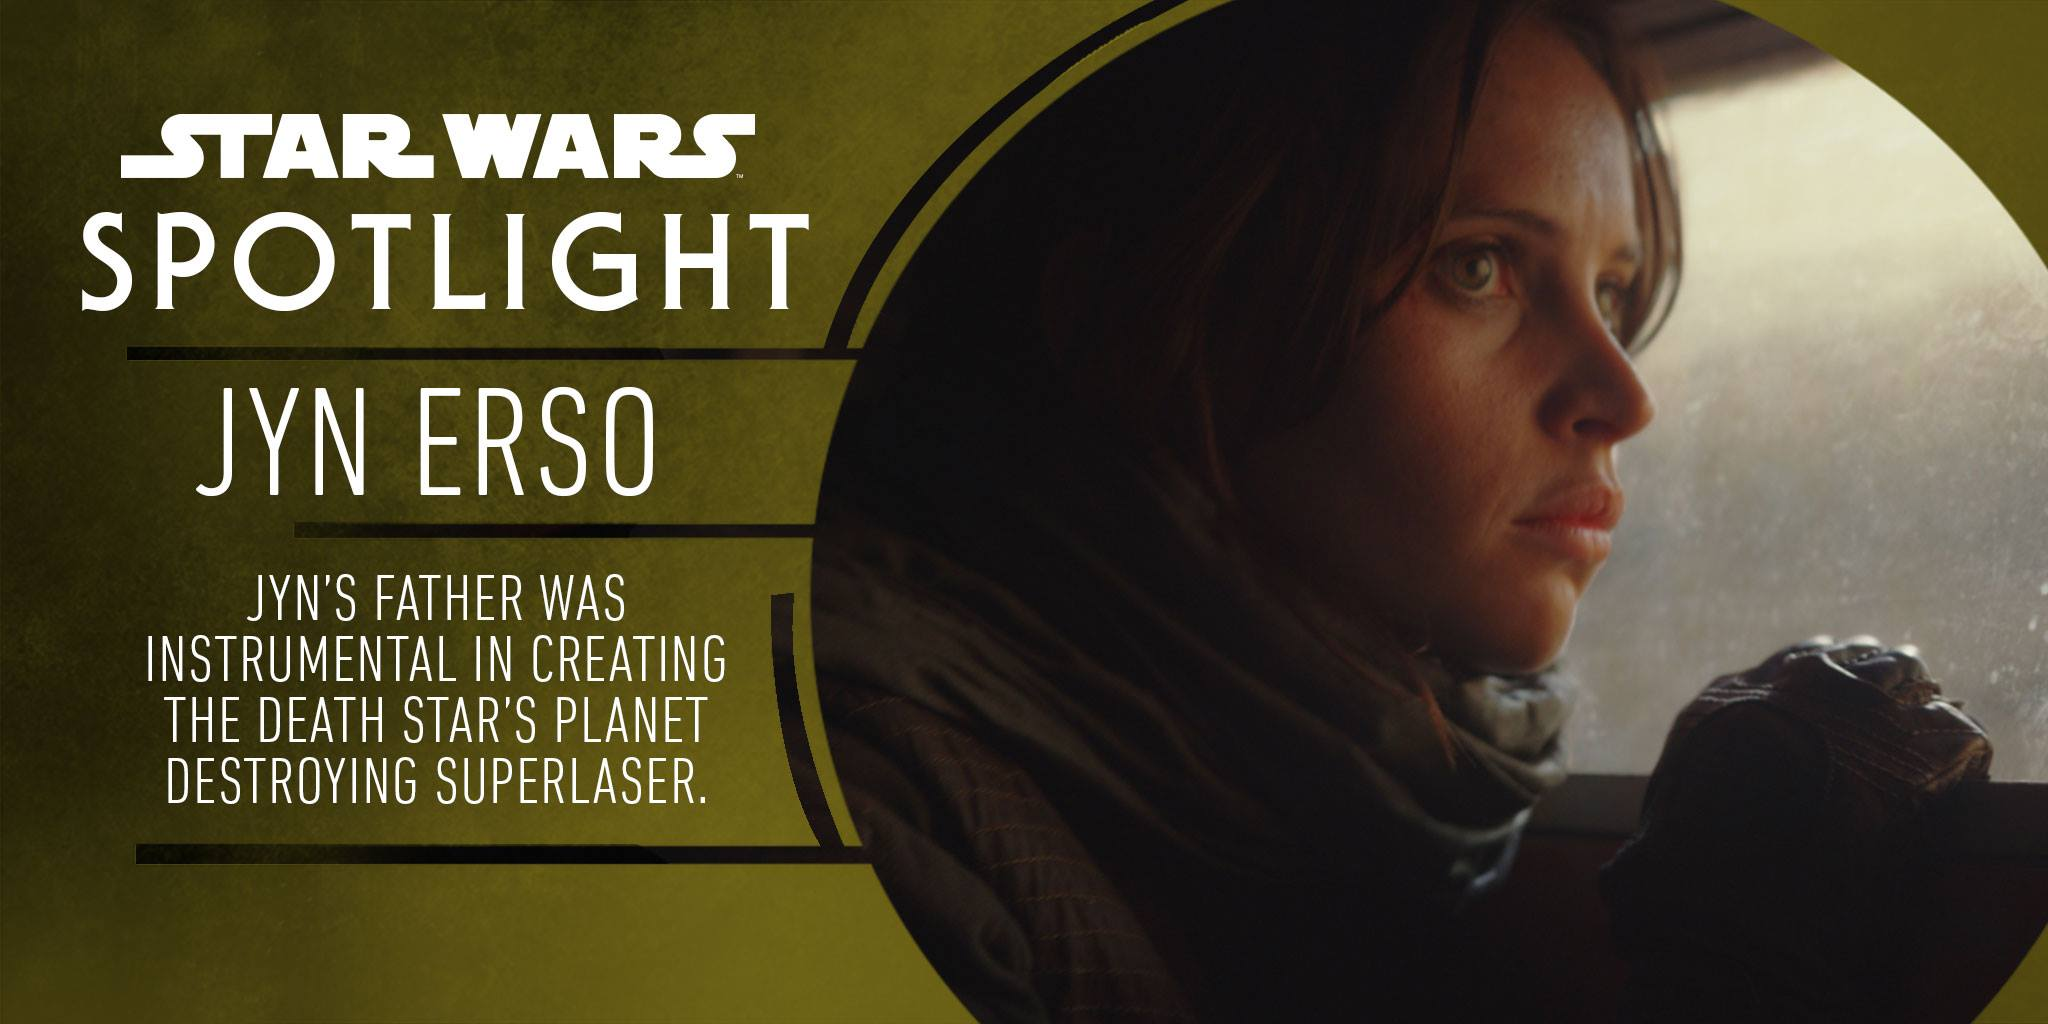 Jyn Erso Images Jyn Erso Hd Wallpaper And Background Photos 40127247